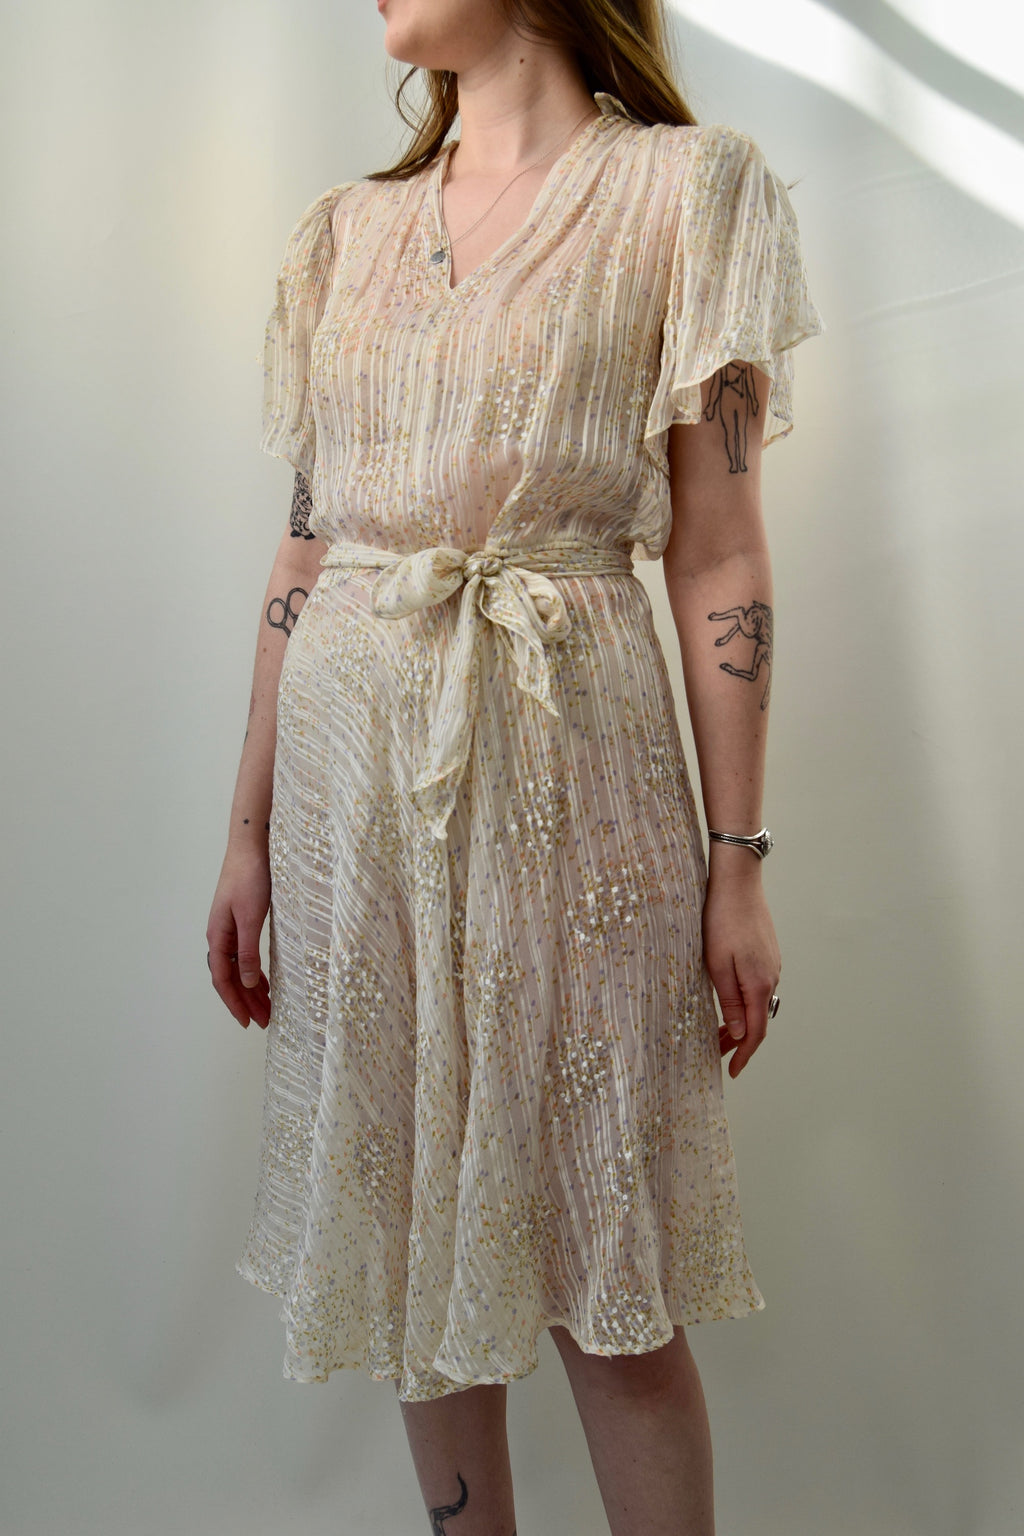 Vintage Sheer Silk Flutter Sleeve Dress FREE SHIPPING TO THE U.S.